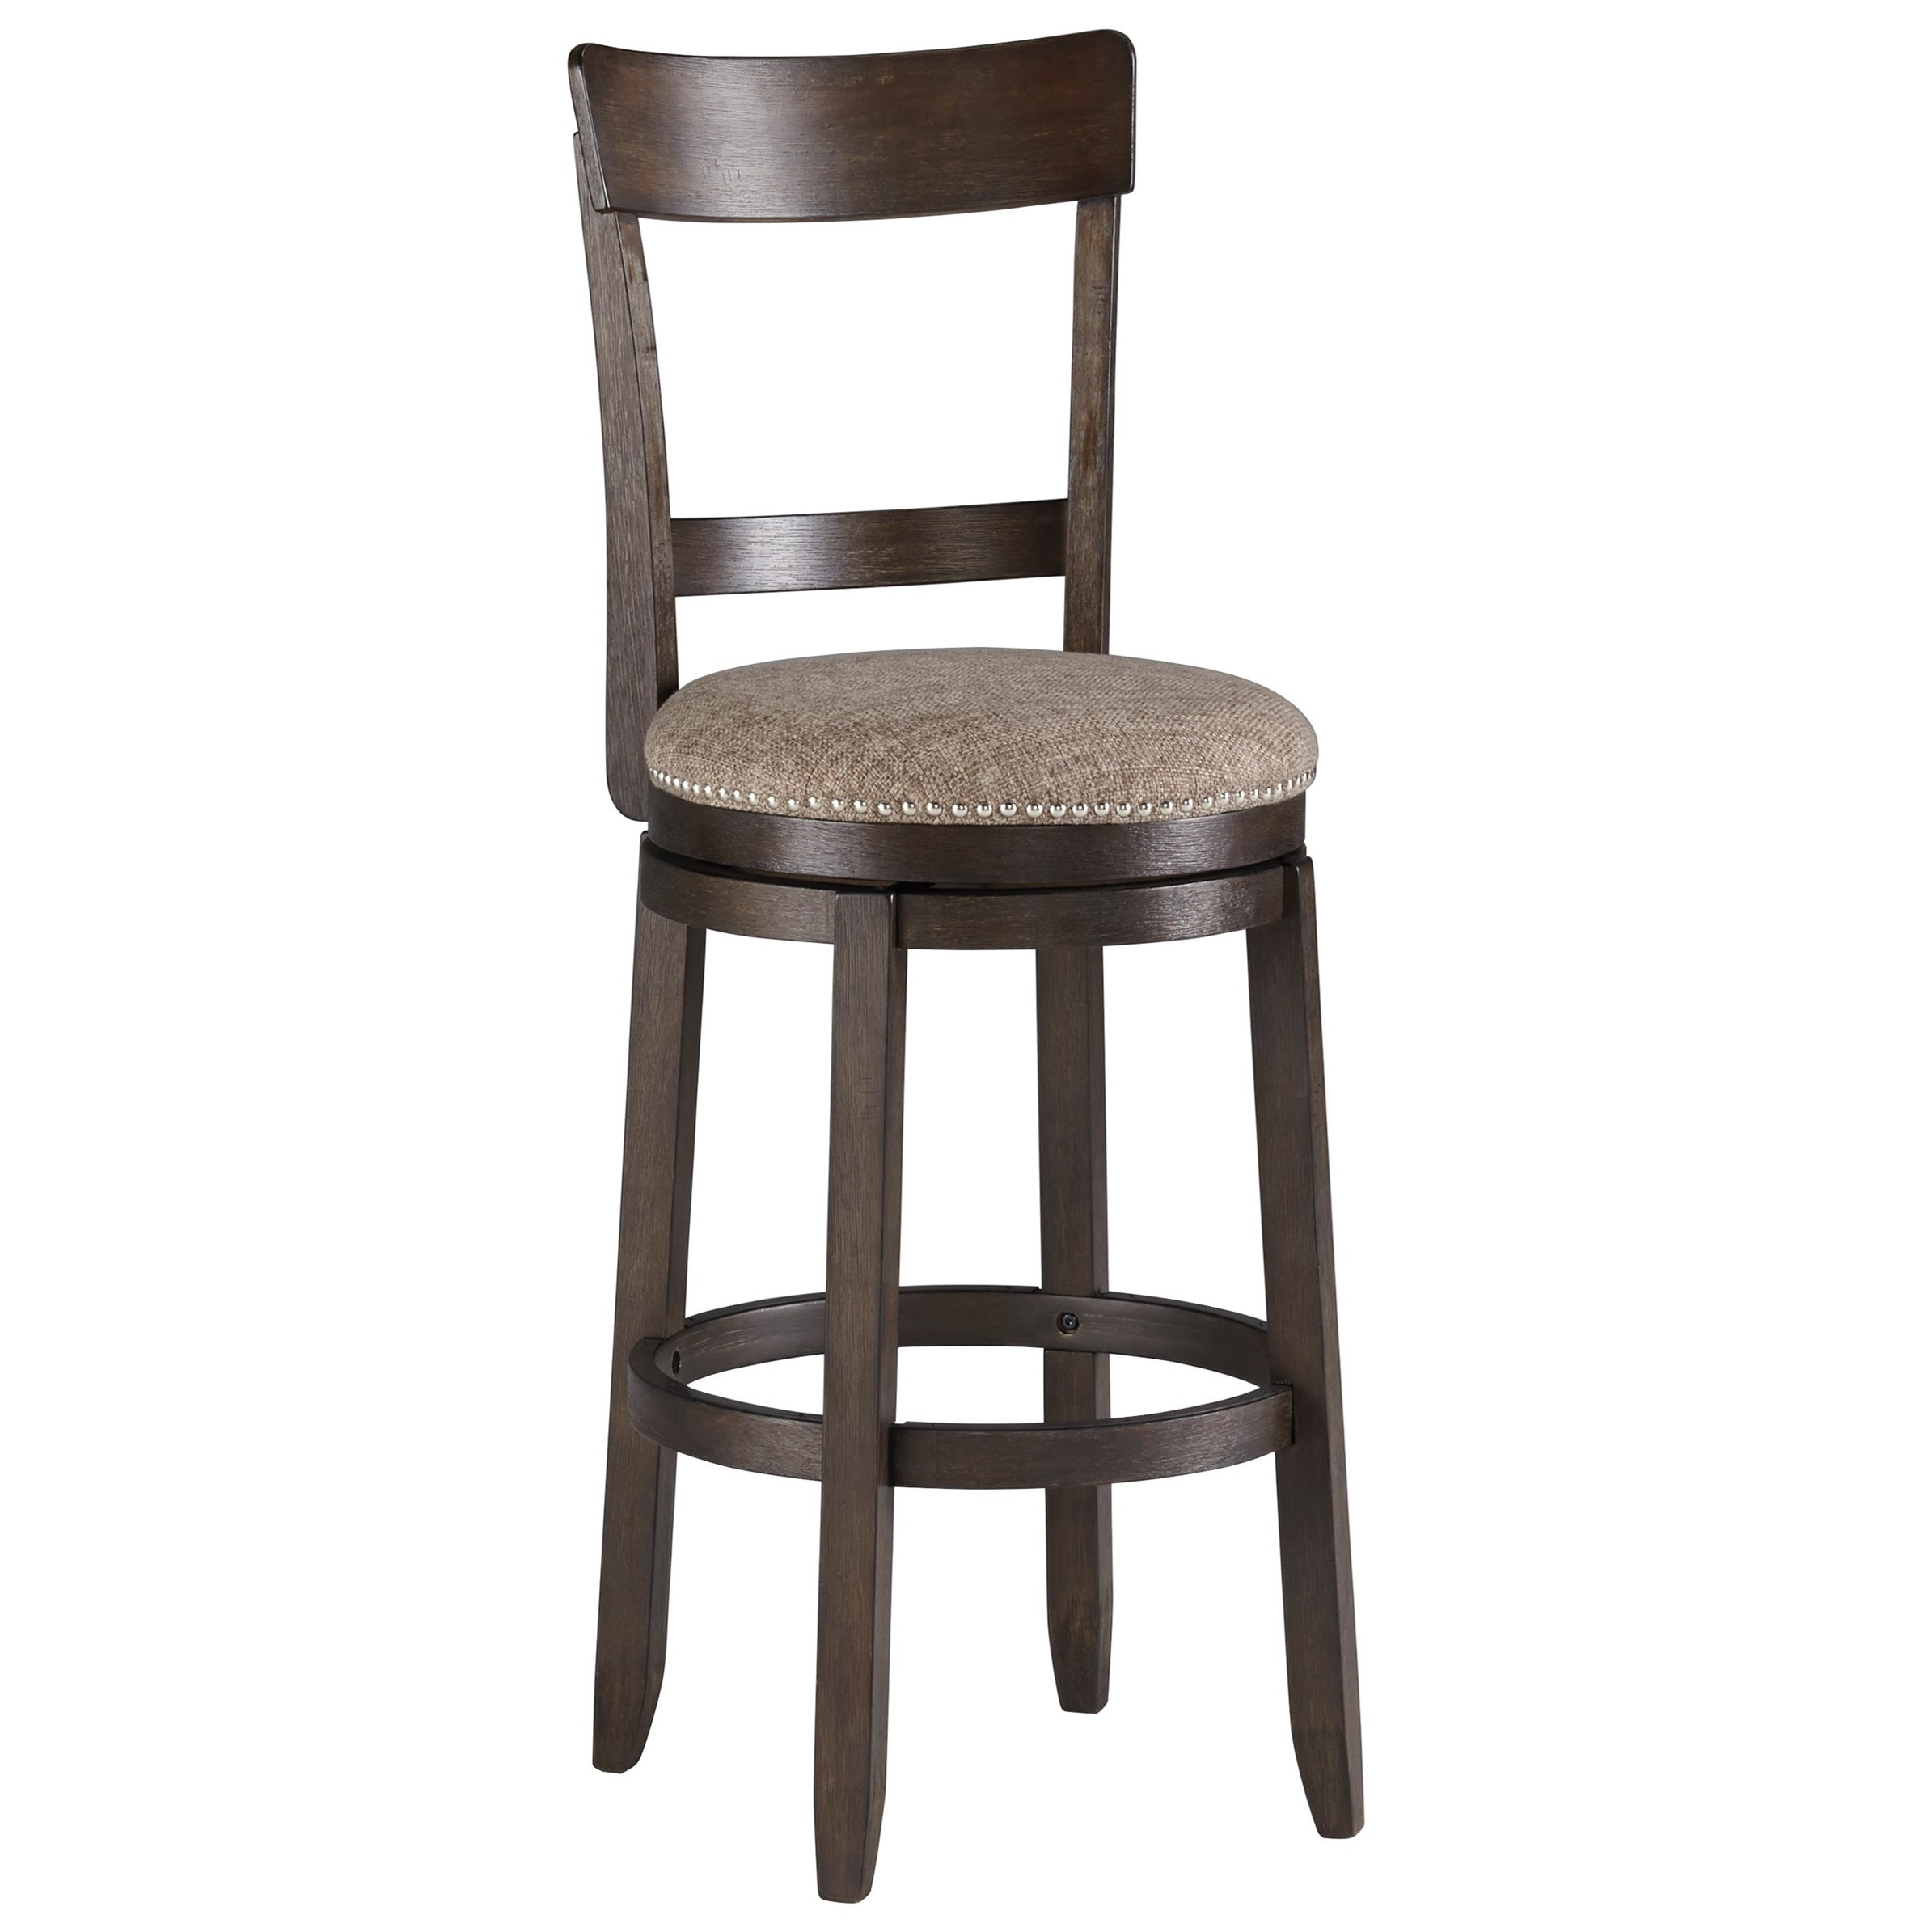 Drewing Upholstered Swivel Barstool by Signature Design by Ashley at Zak's Warehouse Clearance Center